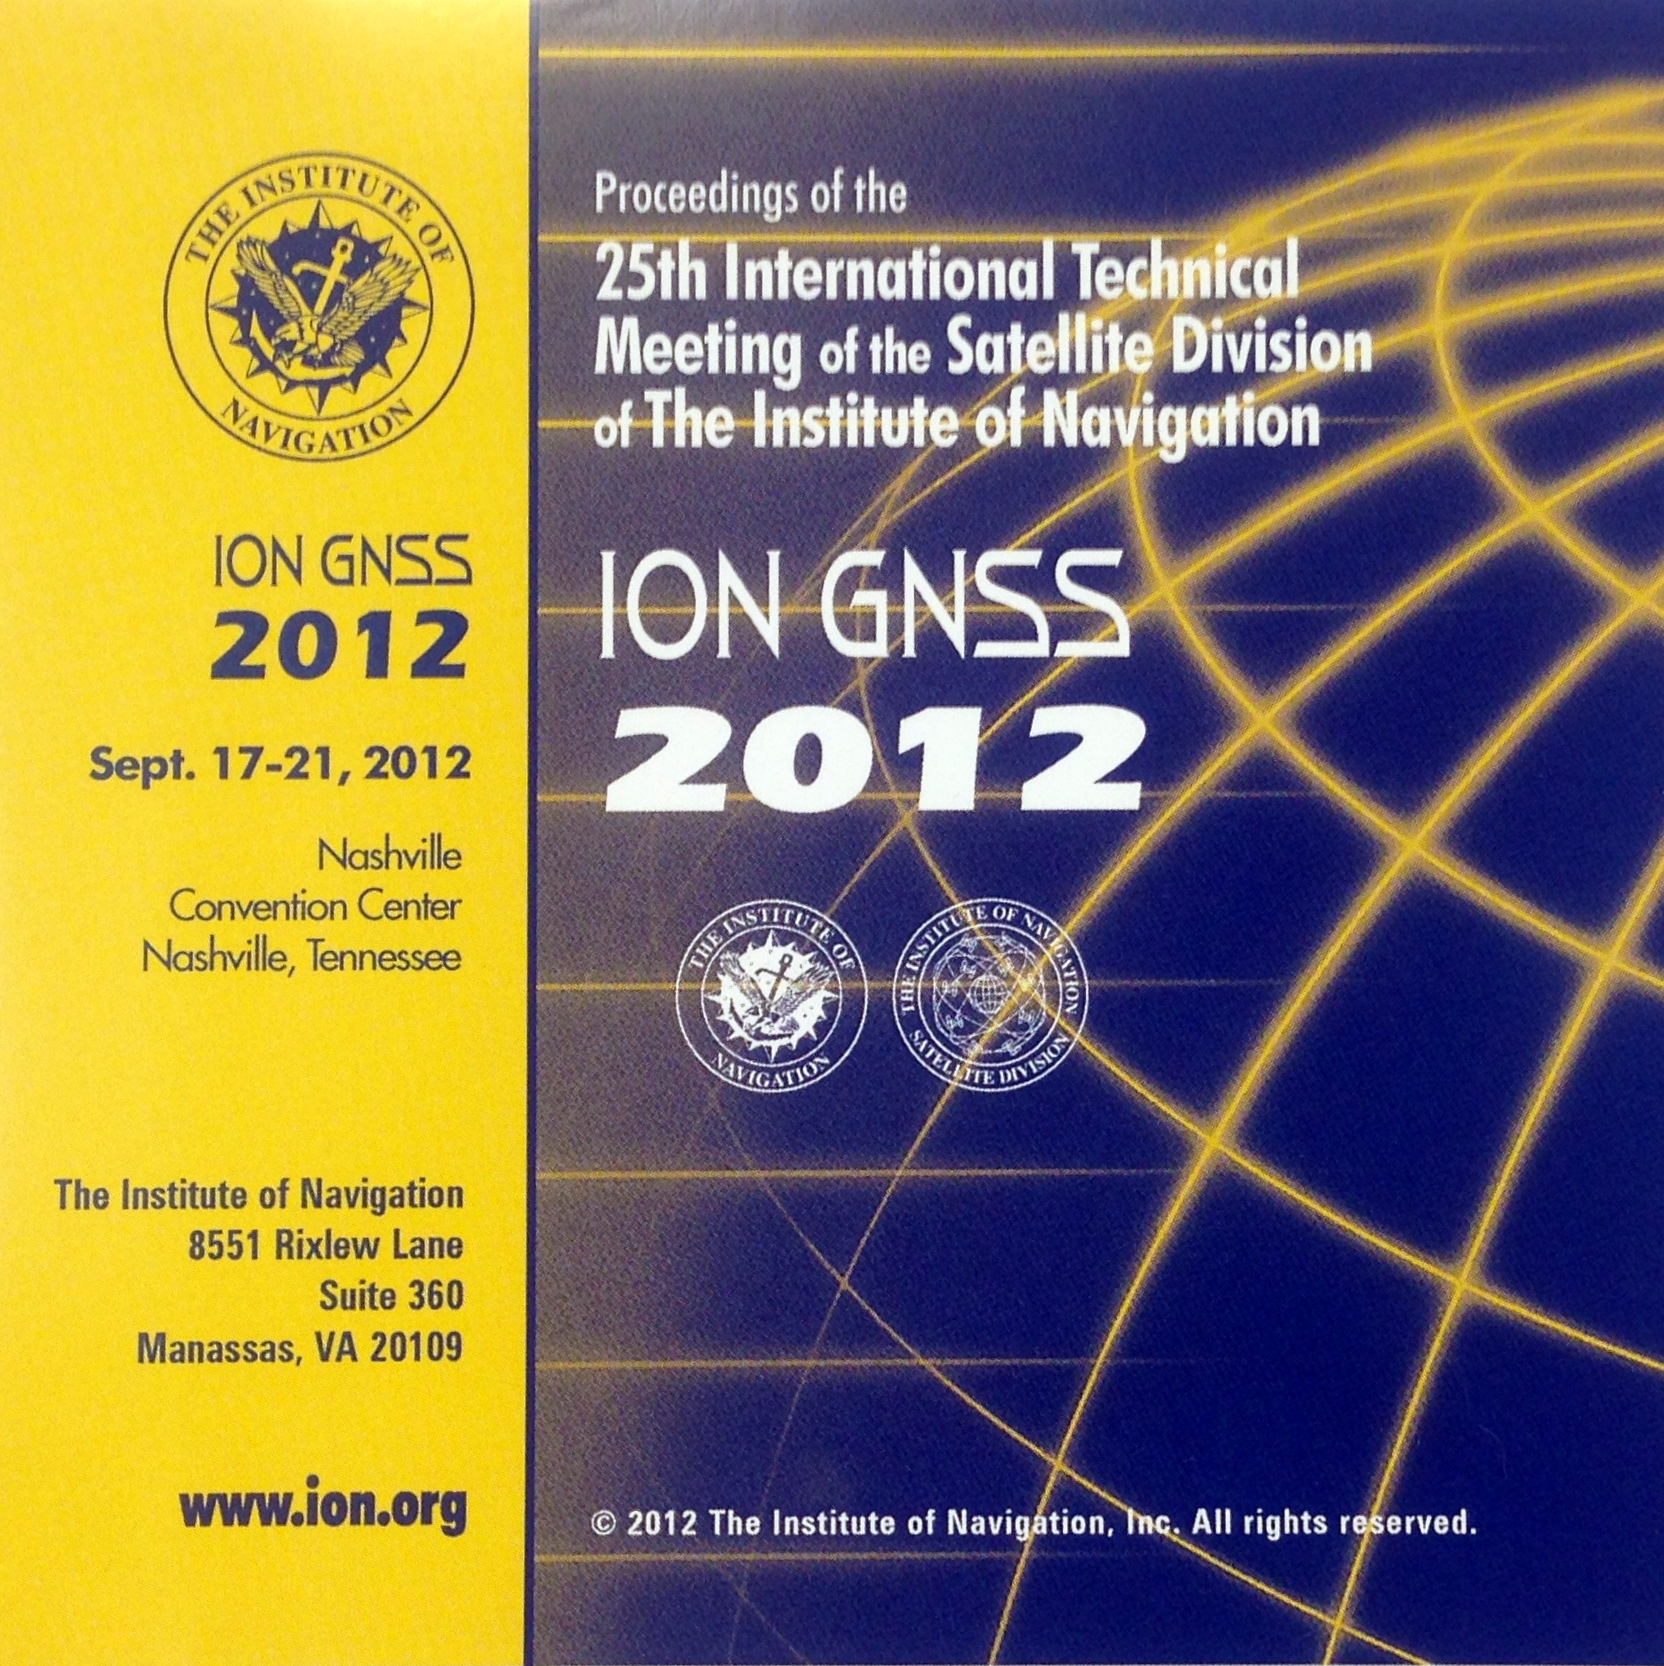 GNSS Proceedings Image